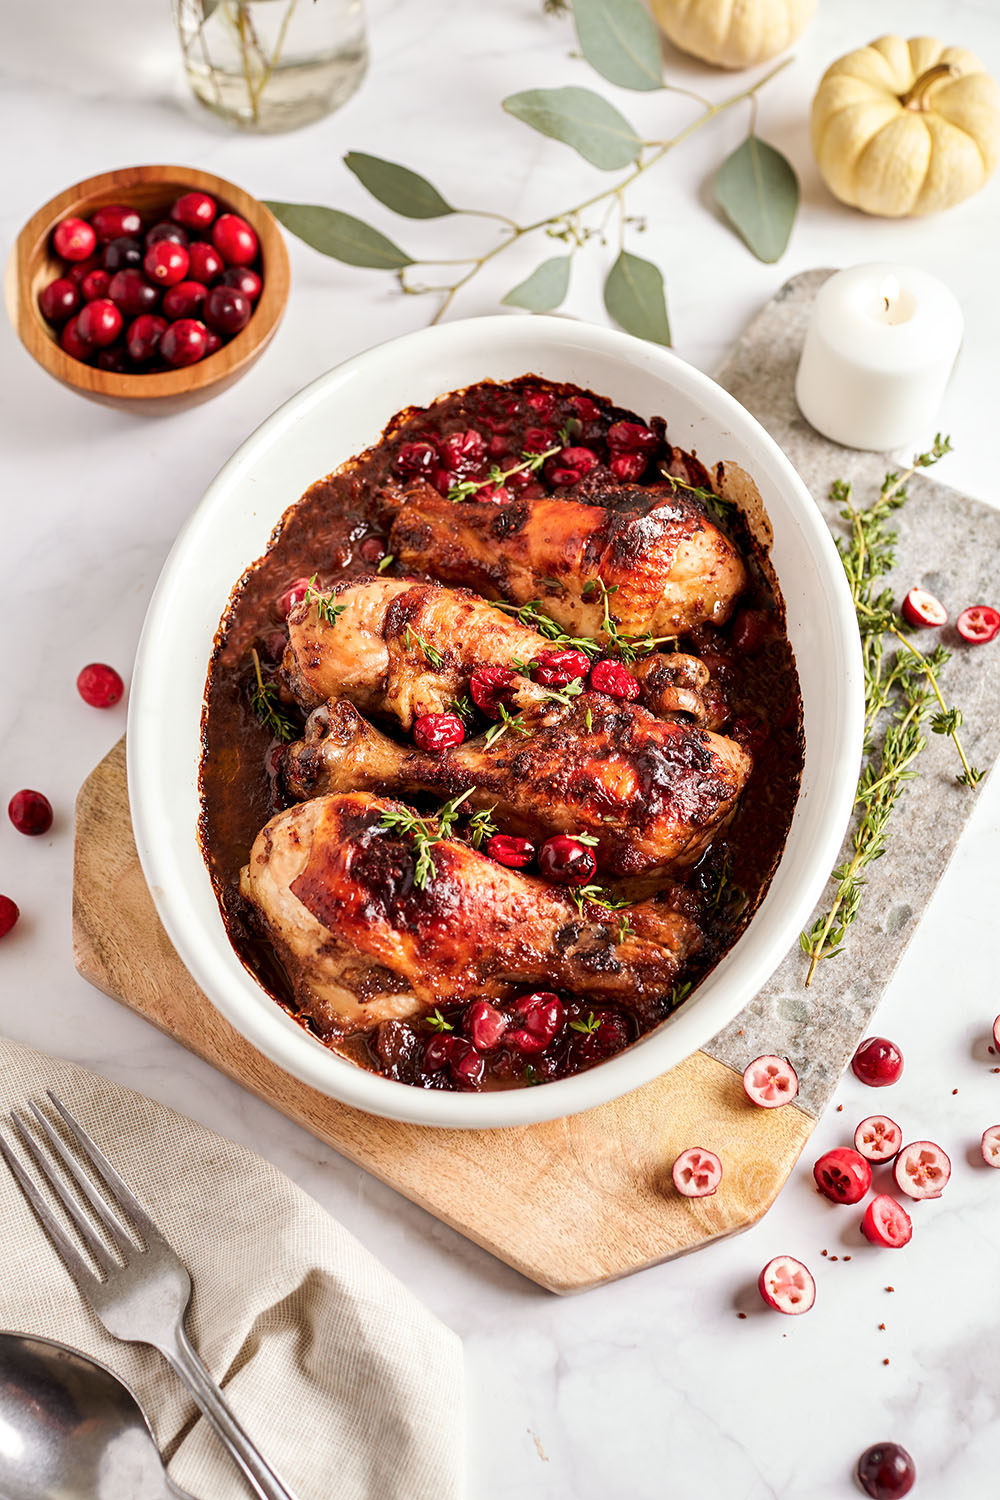 Cranberries balsamic roasted chicken